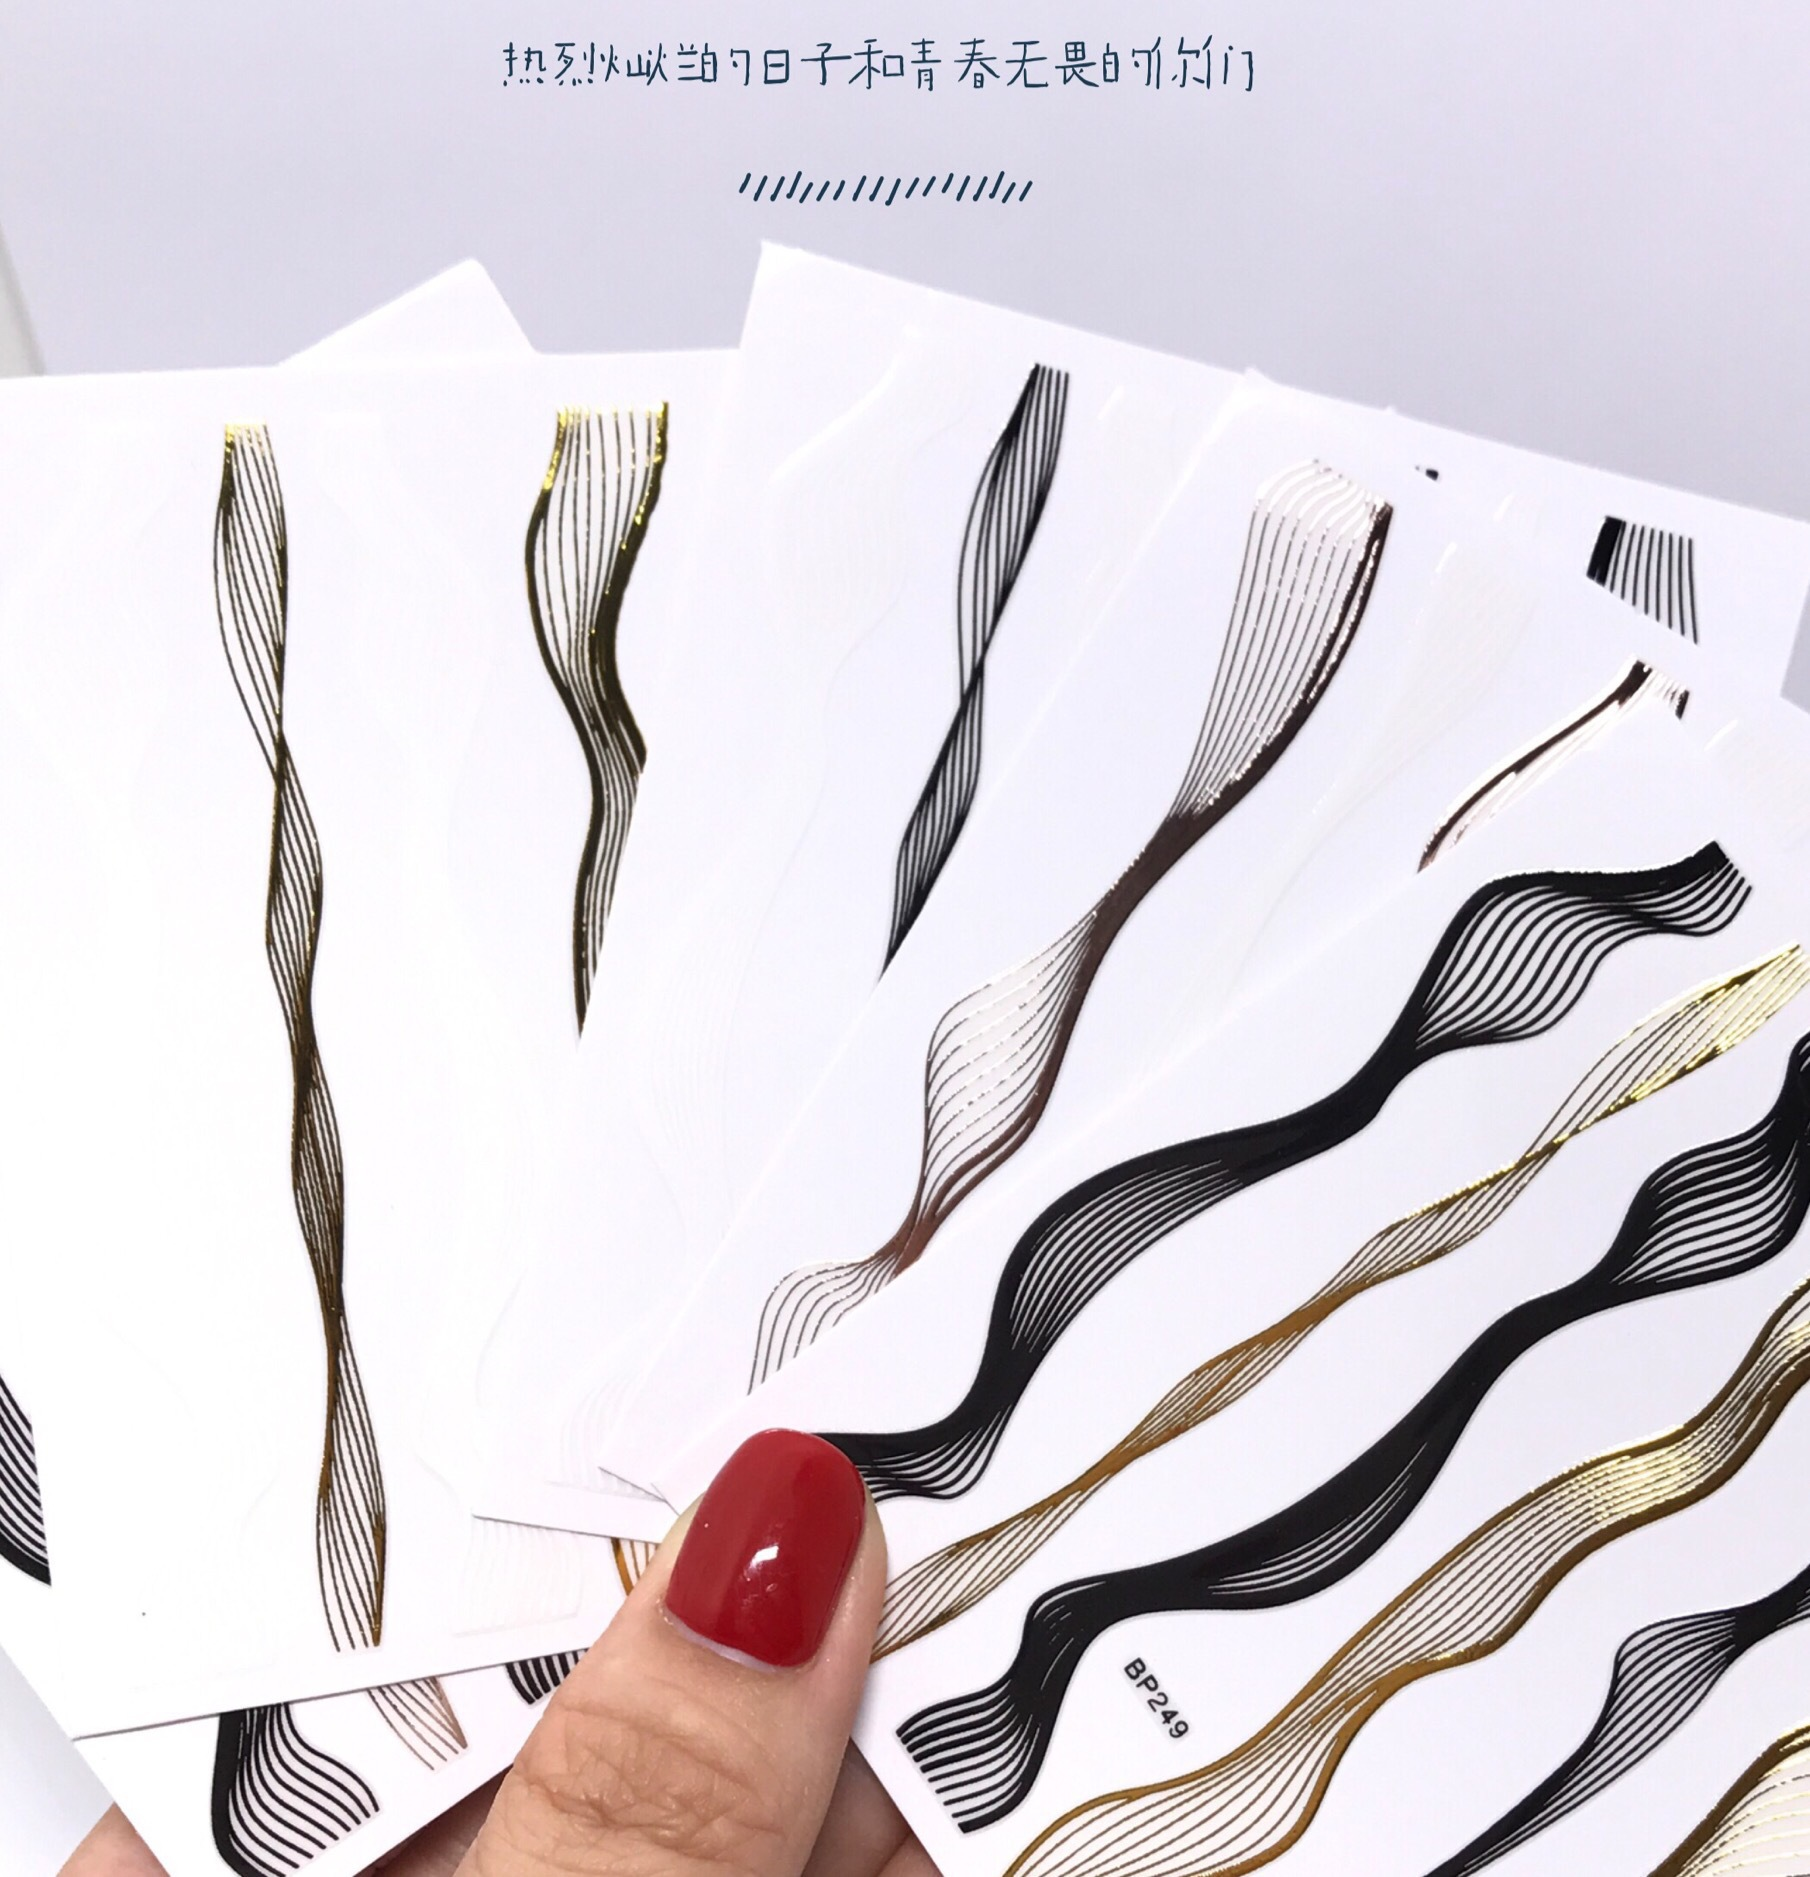 Nail wavy line sticker metal wire bendable chain 3D waterproof nail adhesive 1sheet Art Ultrathin Luxury Sticker